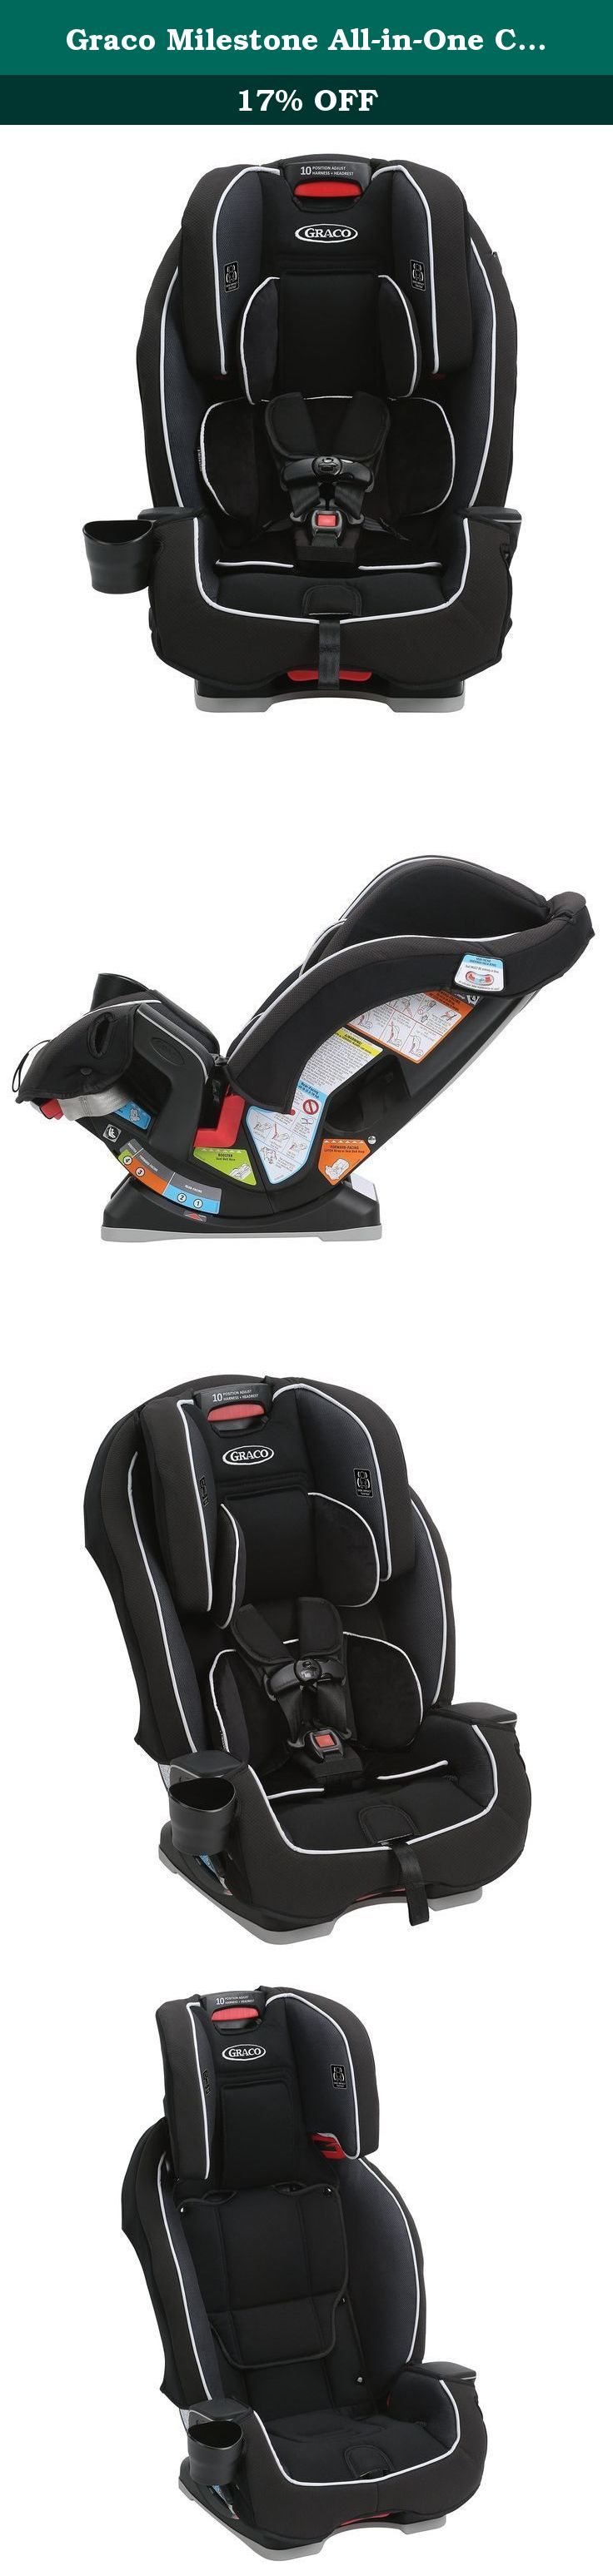 Graco Milestone All-in-One Convertible Car Seat, Gotham. The Graco ...